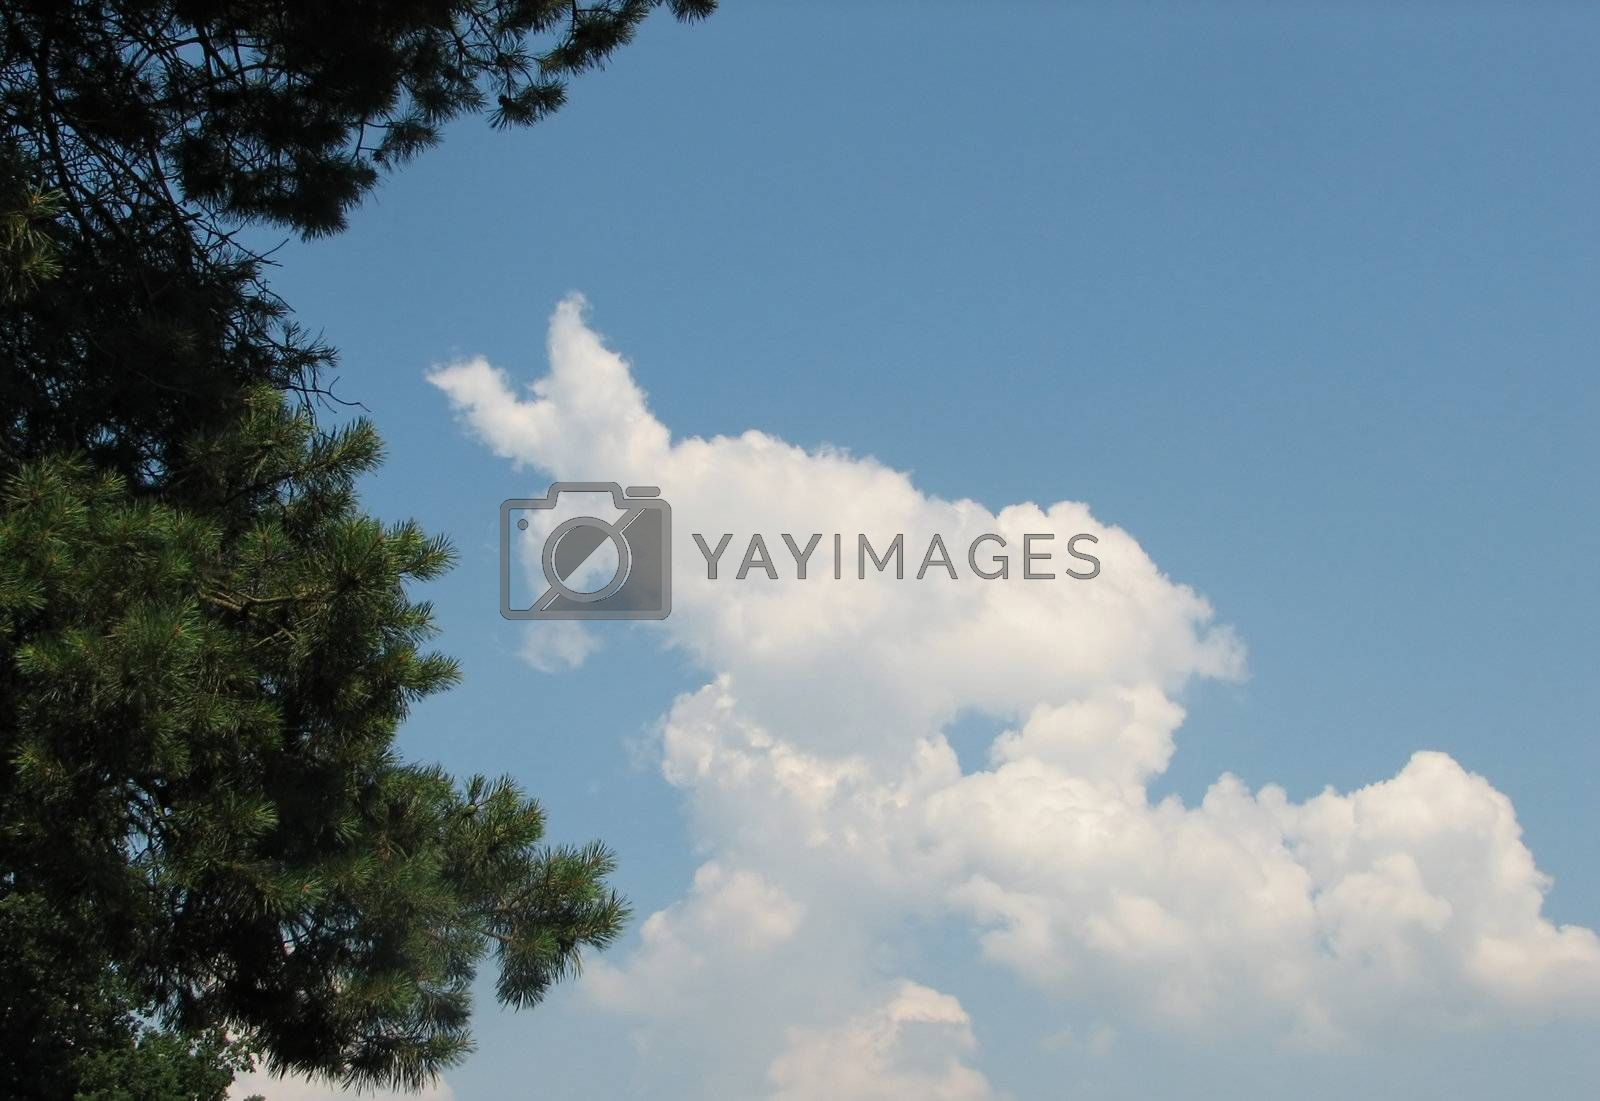 Sky with clouds, usable as background, a pine tree can be seen in the foreground